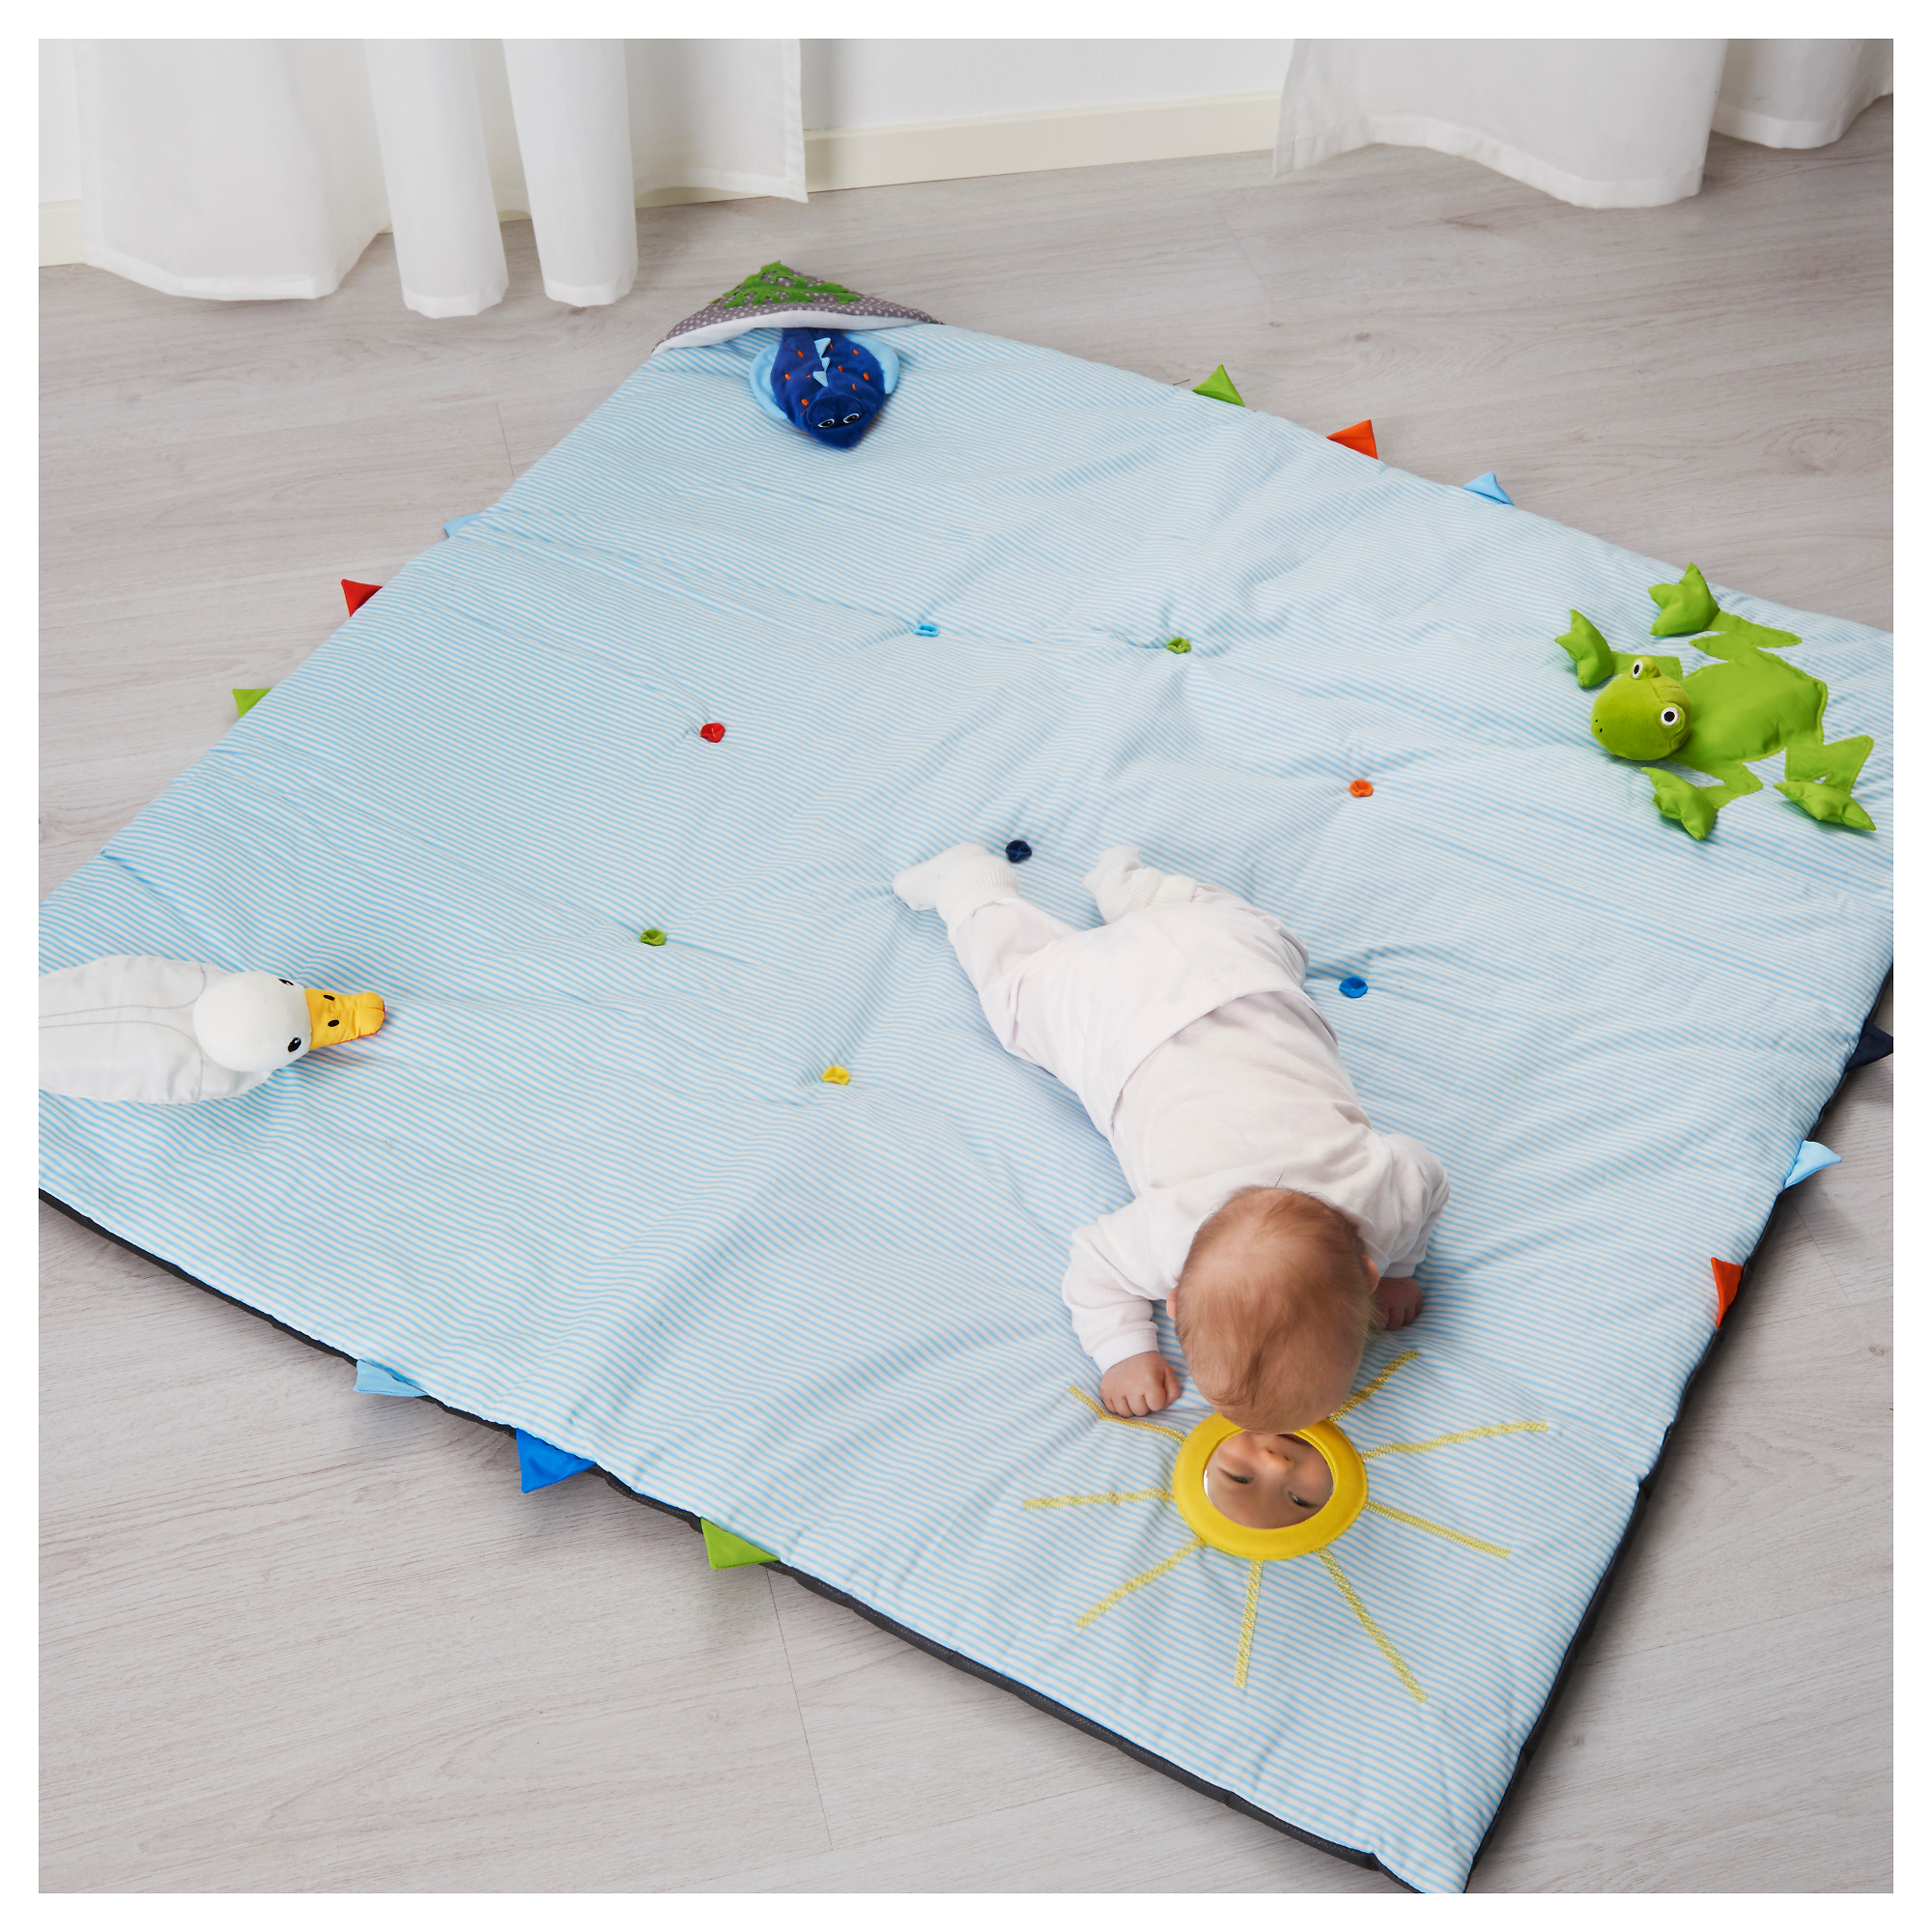 style mats products cartoon image product play floor carpet mat eva baby foam puzzle crawling